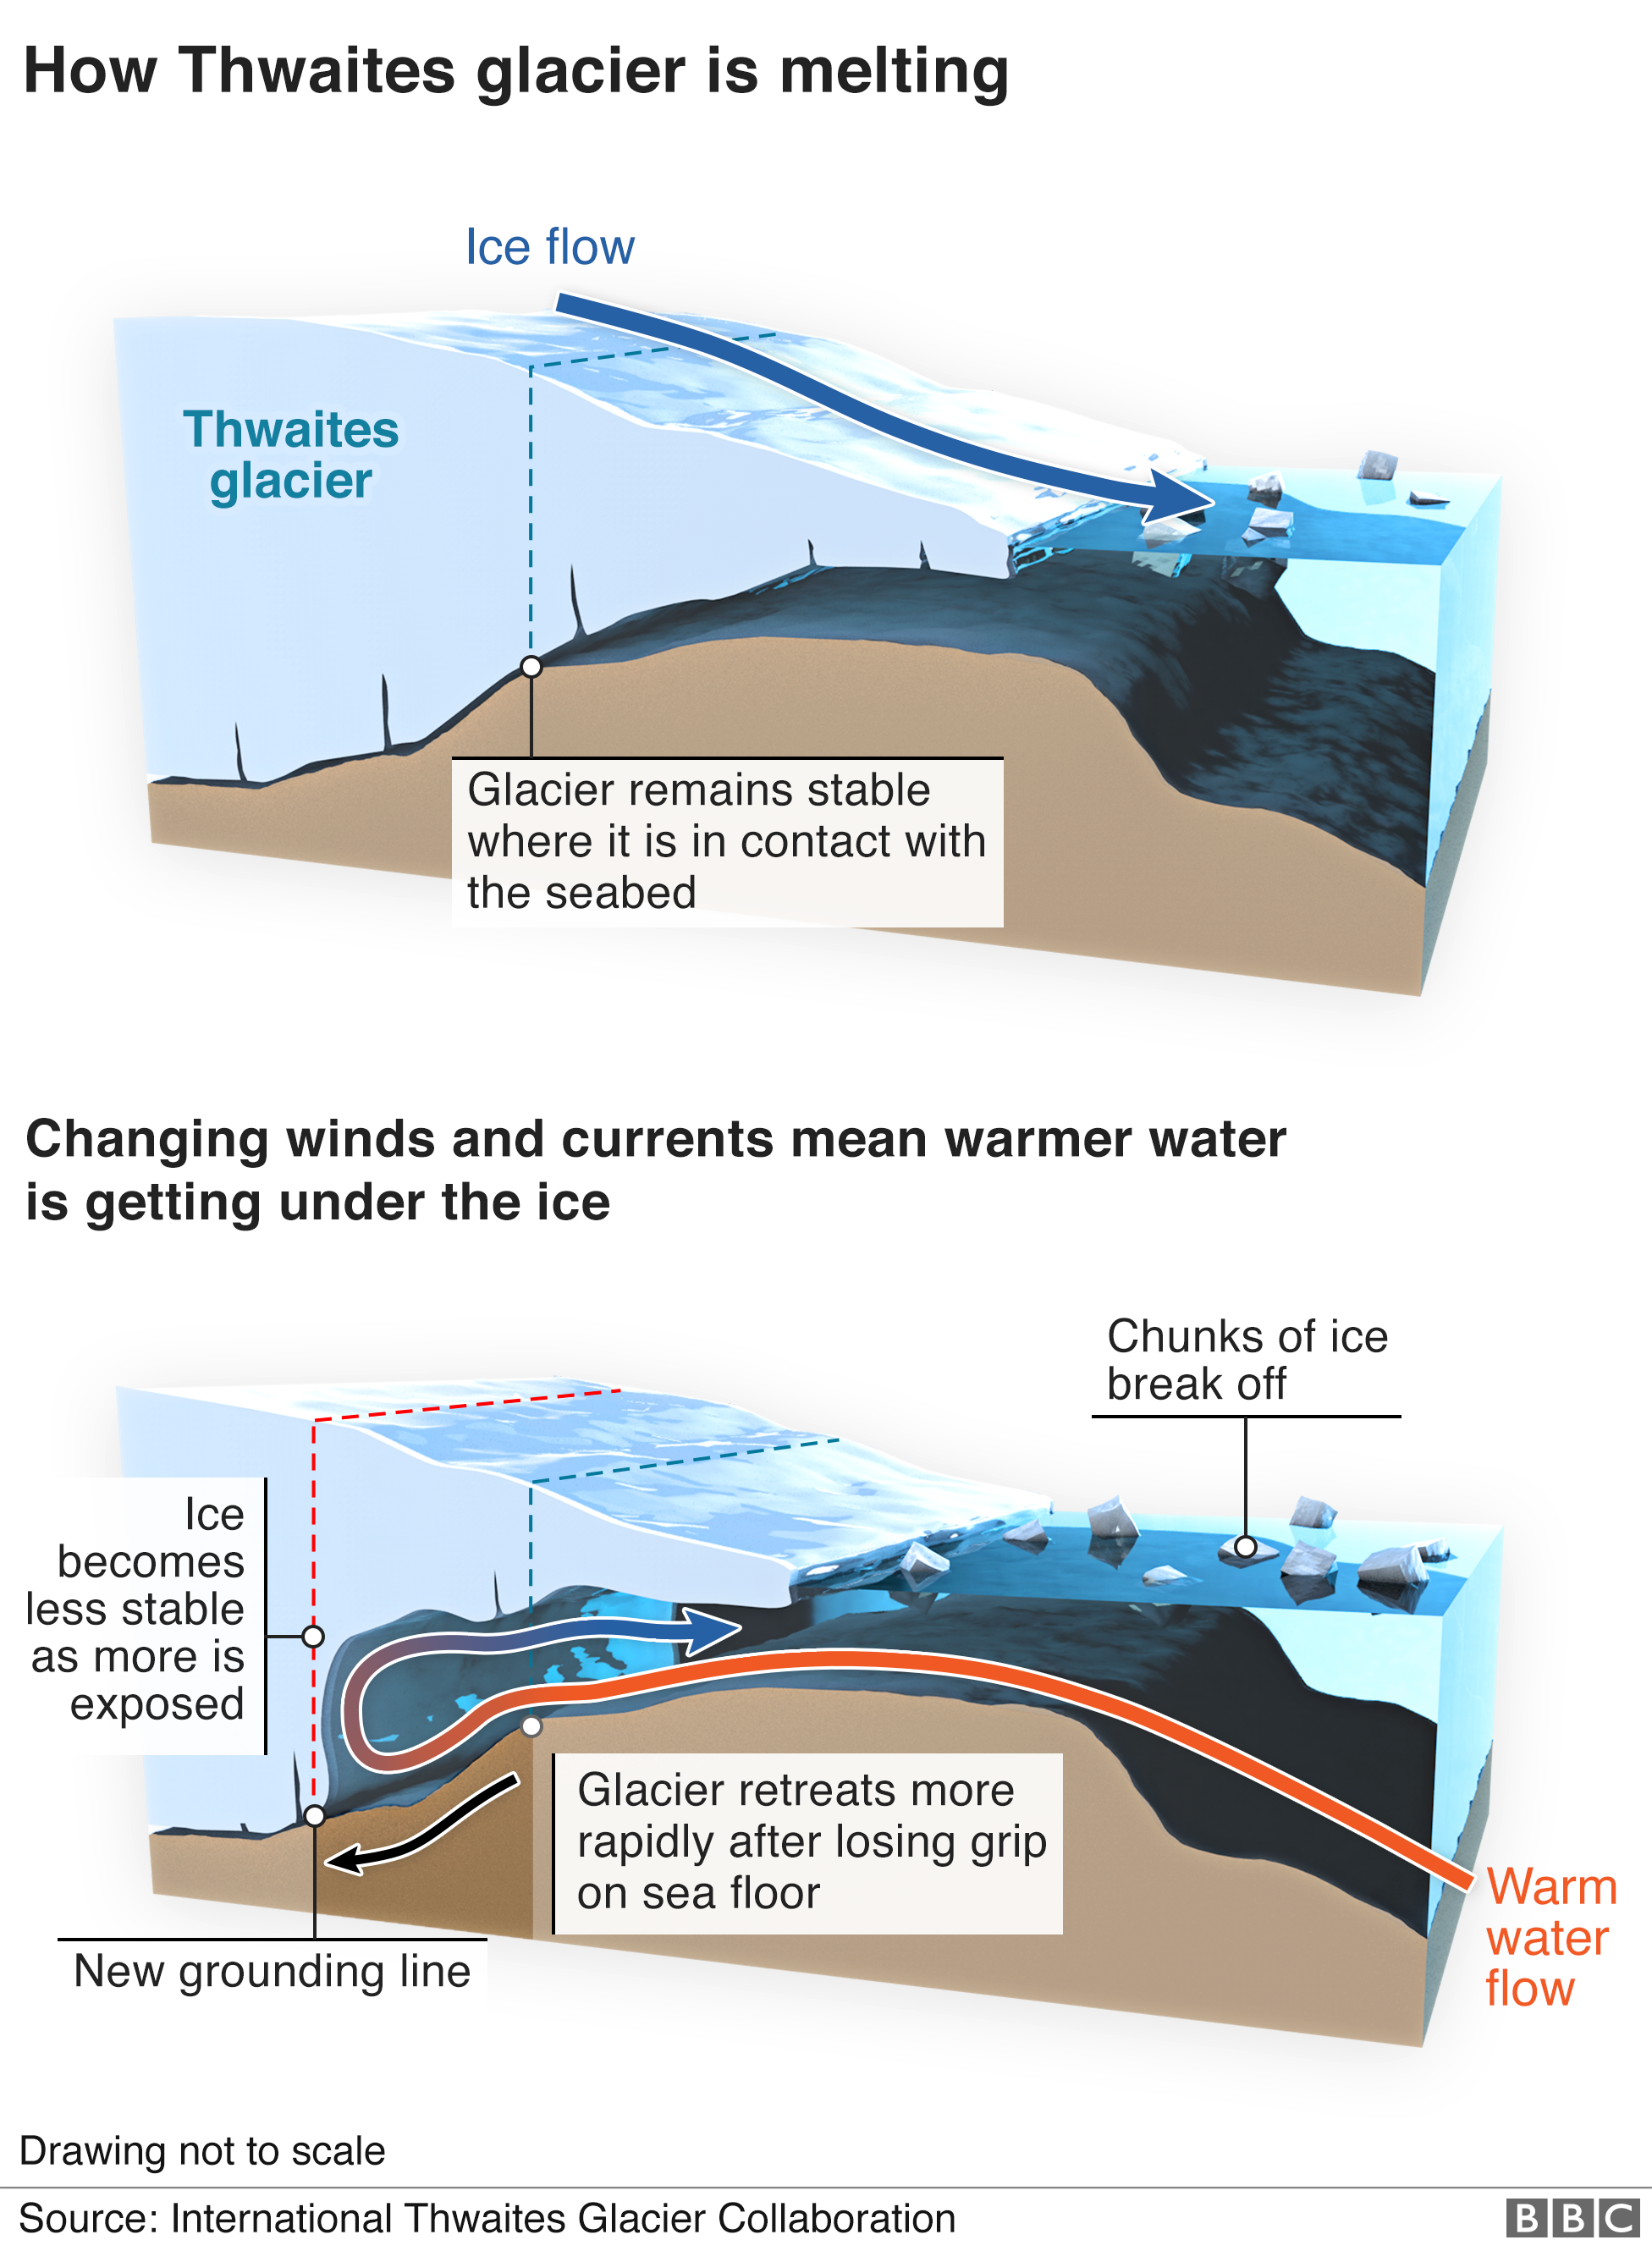 3d infographic explaining how warmer water is getting under the ice and speeding up the melting process